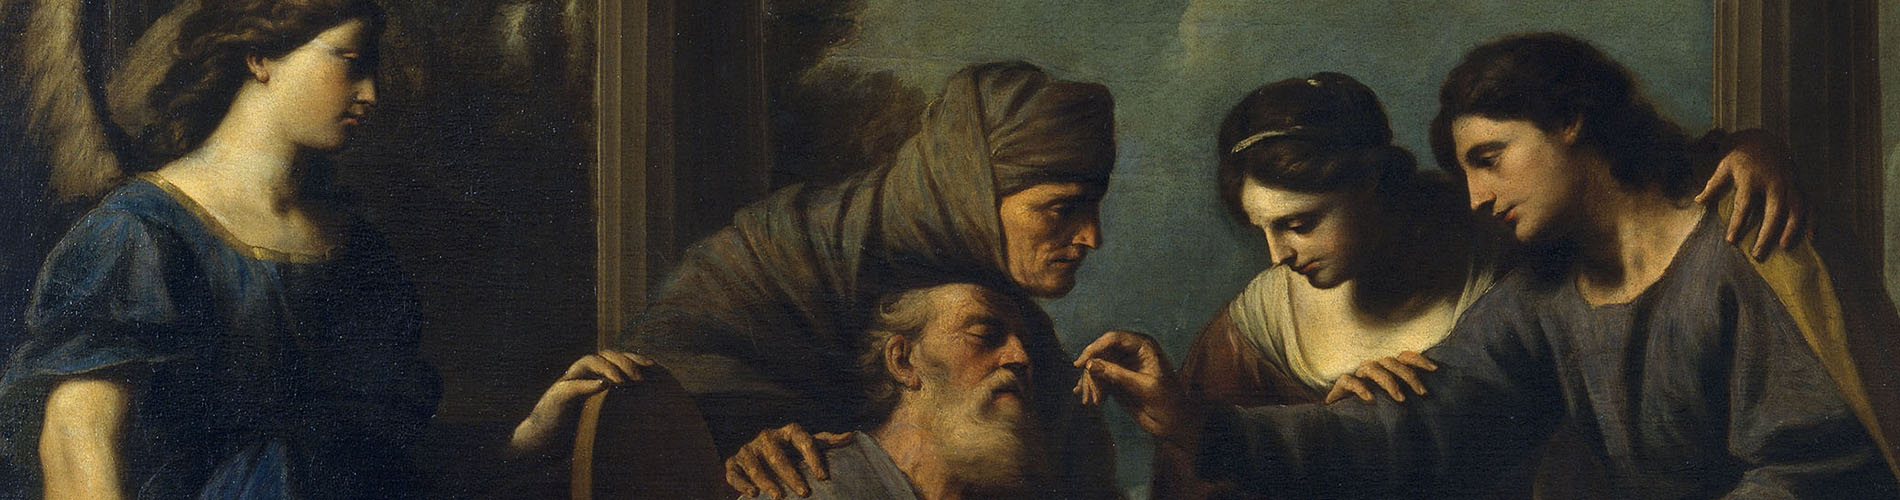 Andrea Vaccaro, The Healing of Tobit, 1667